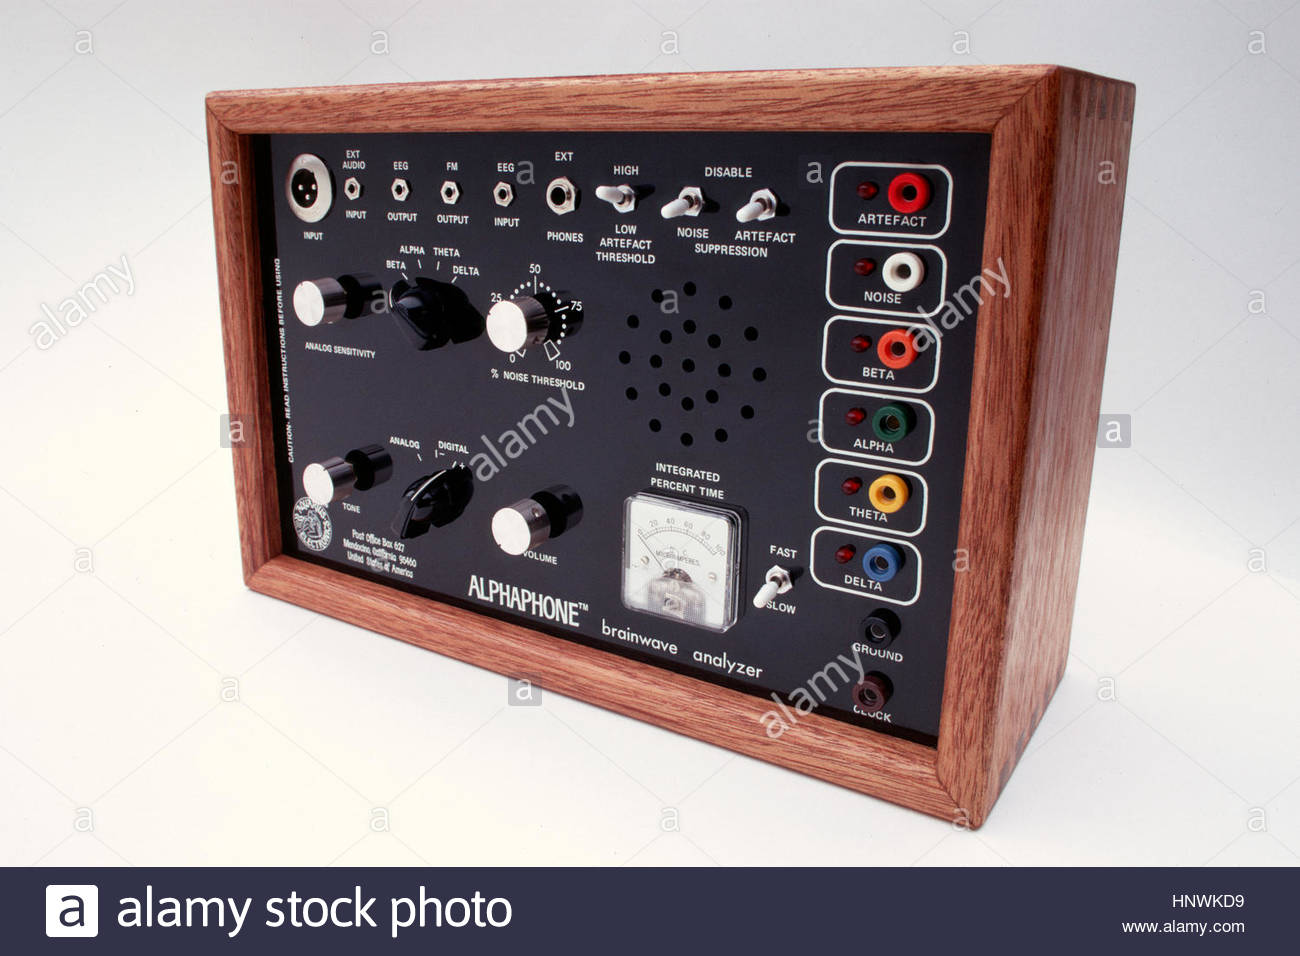 Original ALPHAPHONE brainwave analyzer designed by R. Timothy Scully, PhD in 1972 Stock Photo